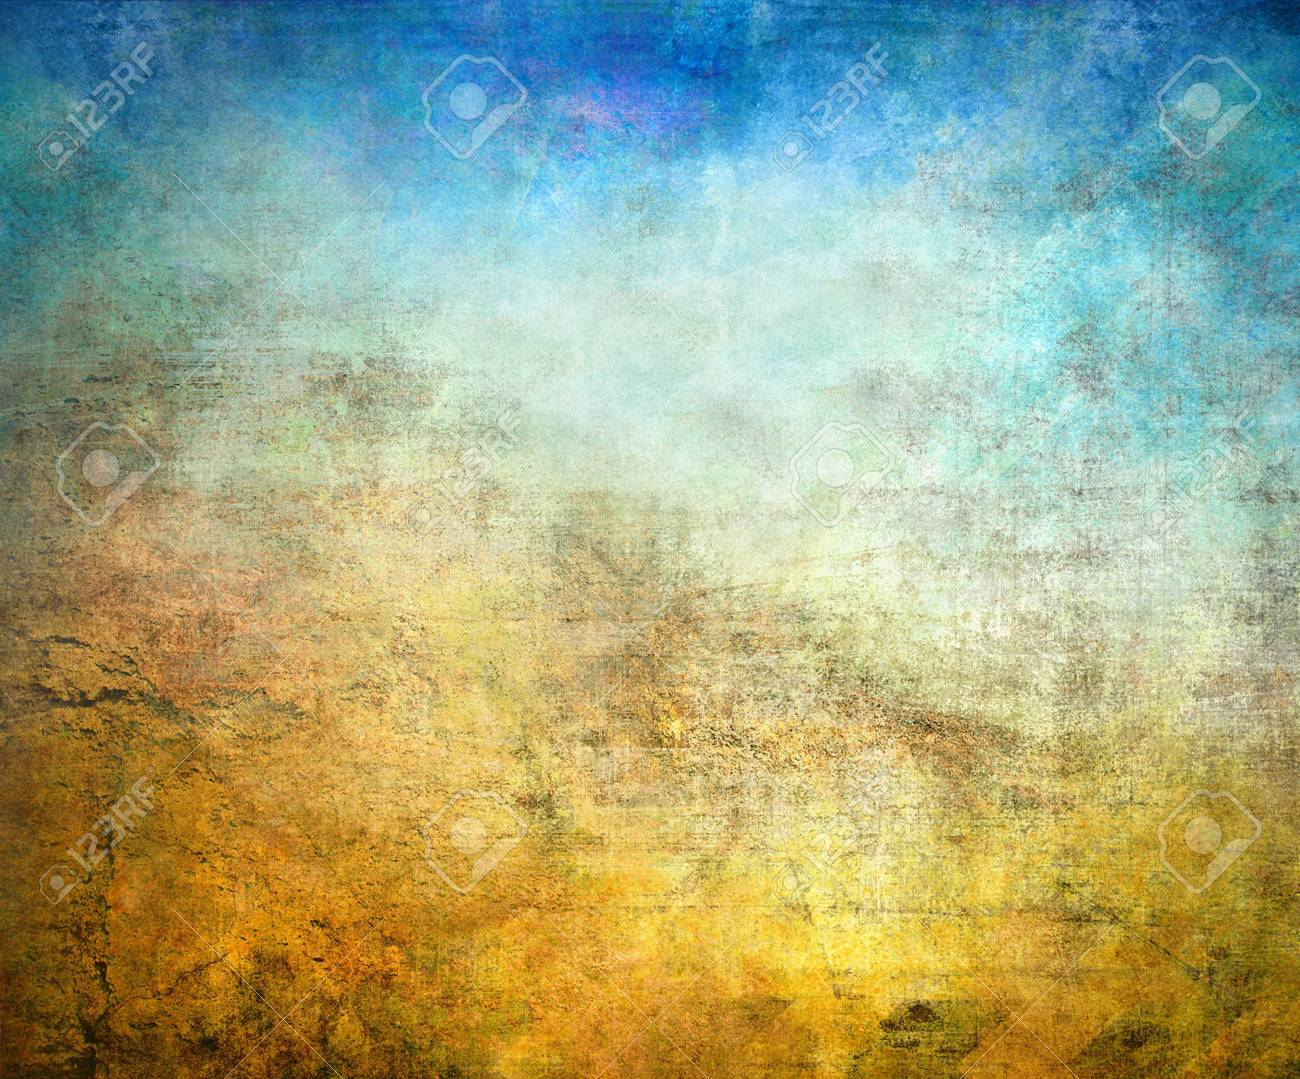 Grunge background, blue and brown color texture Stock Photo - 20952766